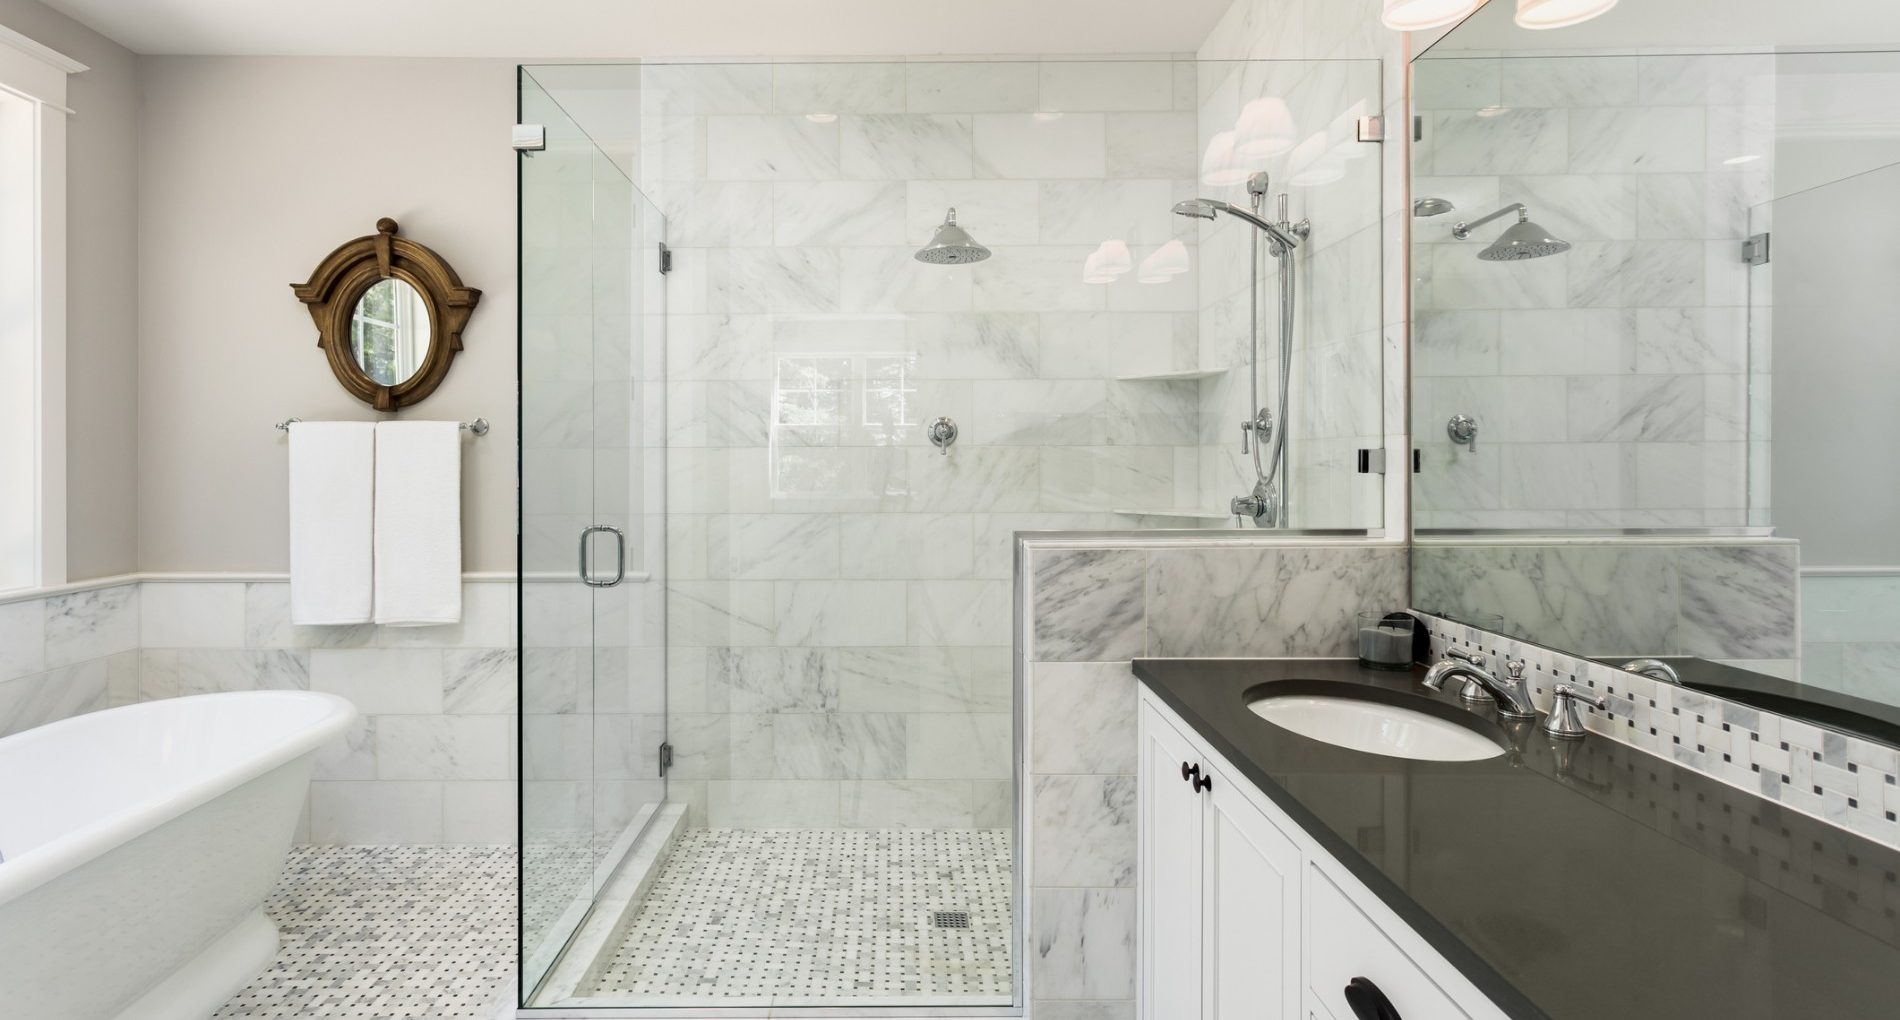 7 Things to Consider for Your Savannah Master Bathroom